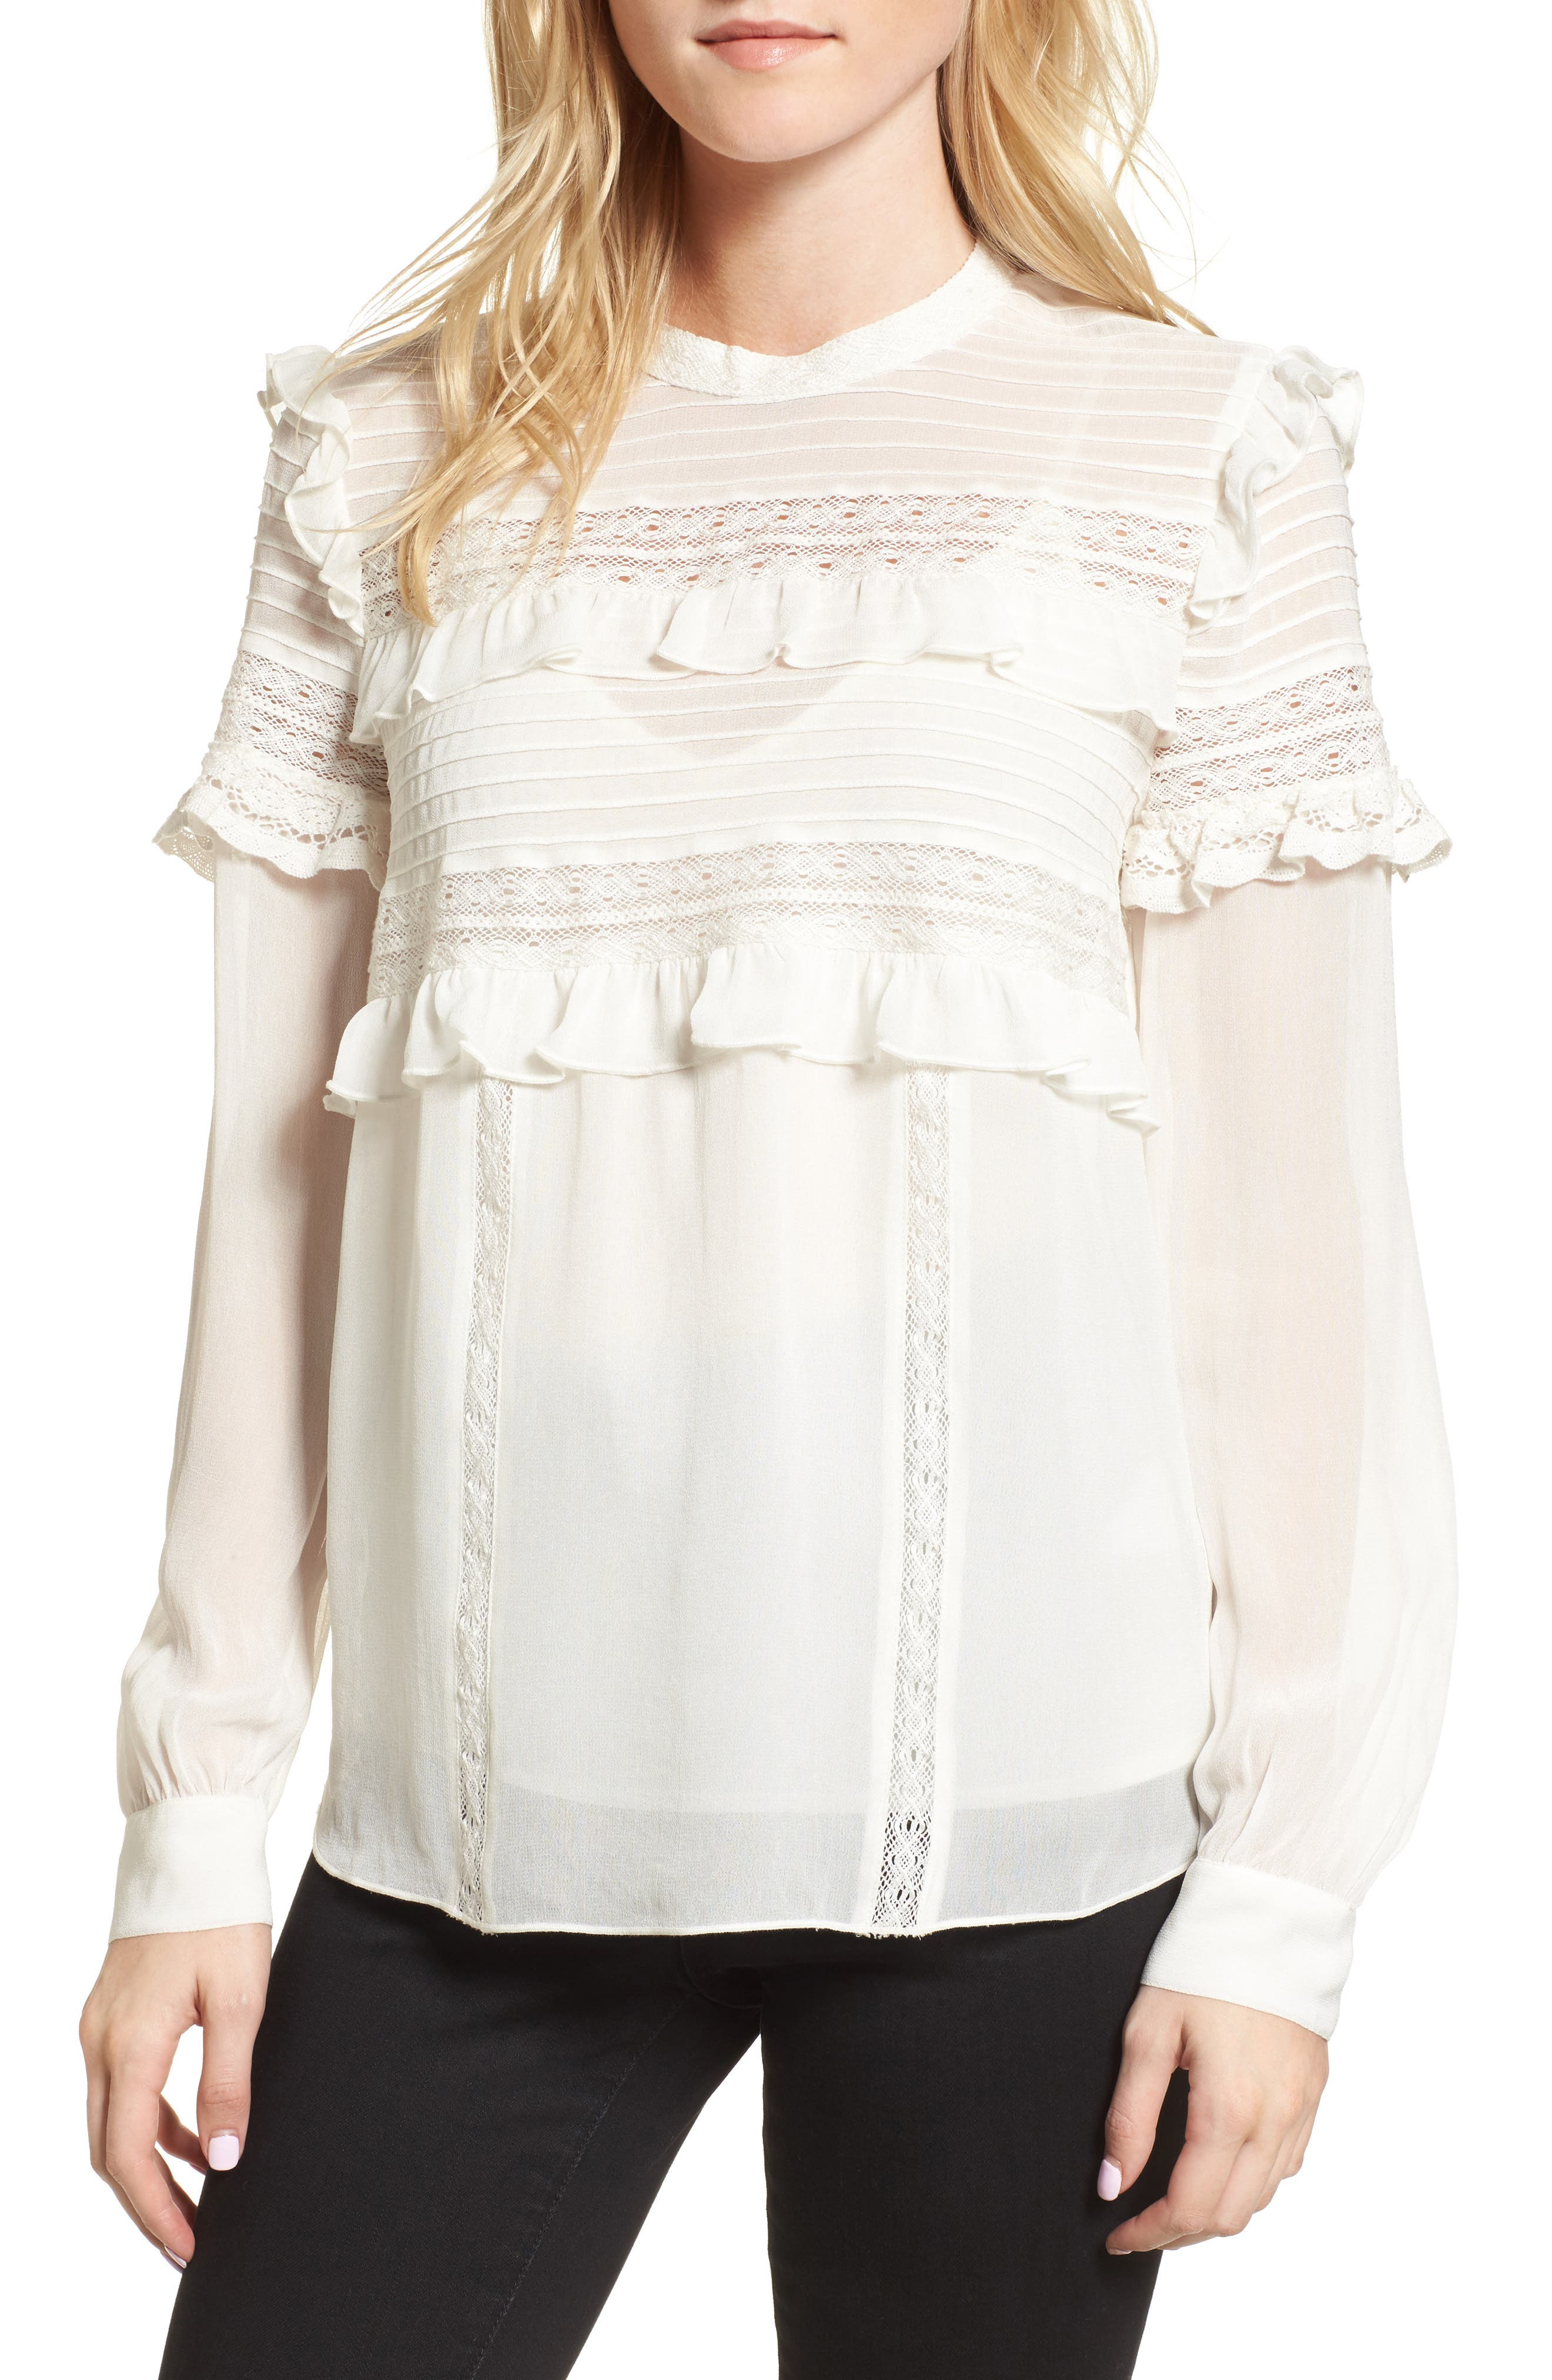 Alternate Image 1 Selected - Hinge Ruffle Lace Top